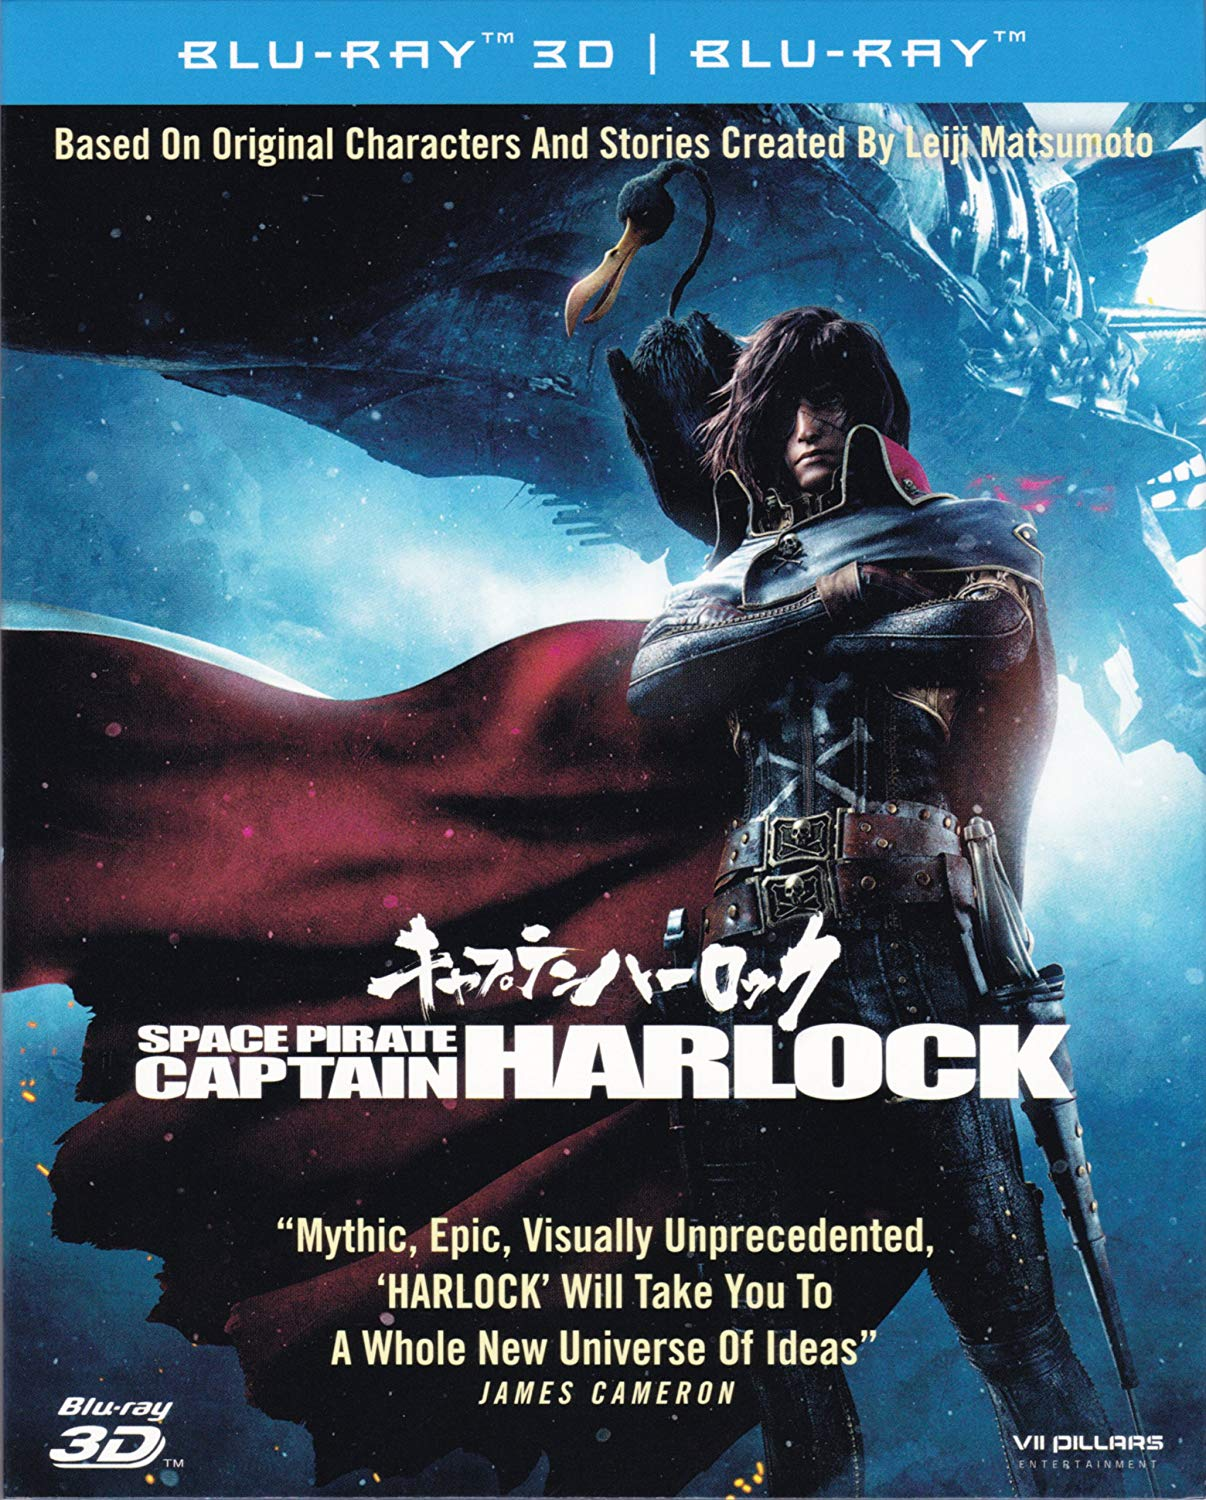 Anime cover: Captain Harlock